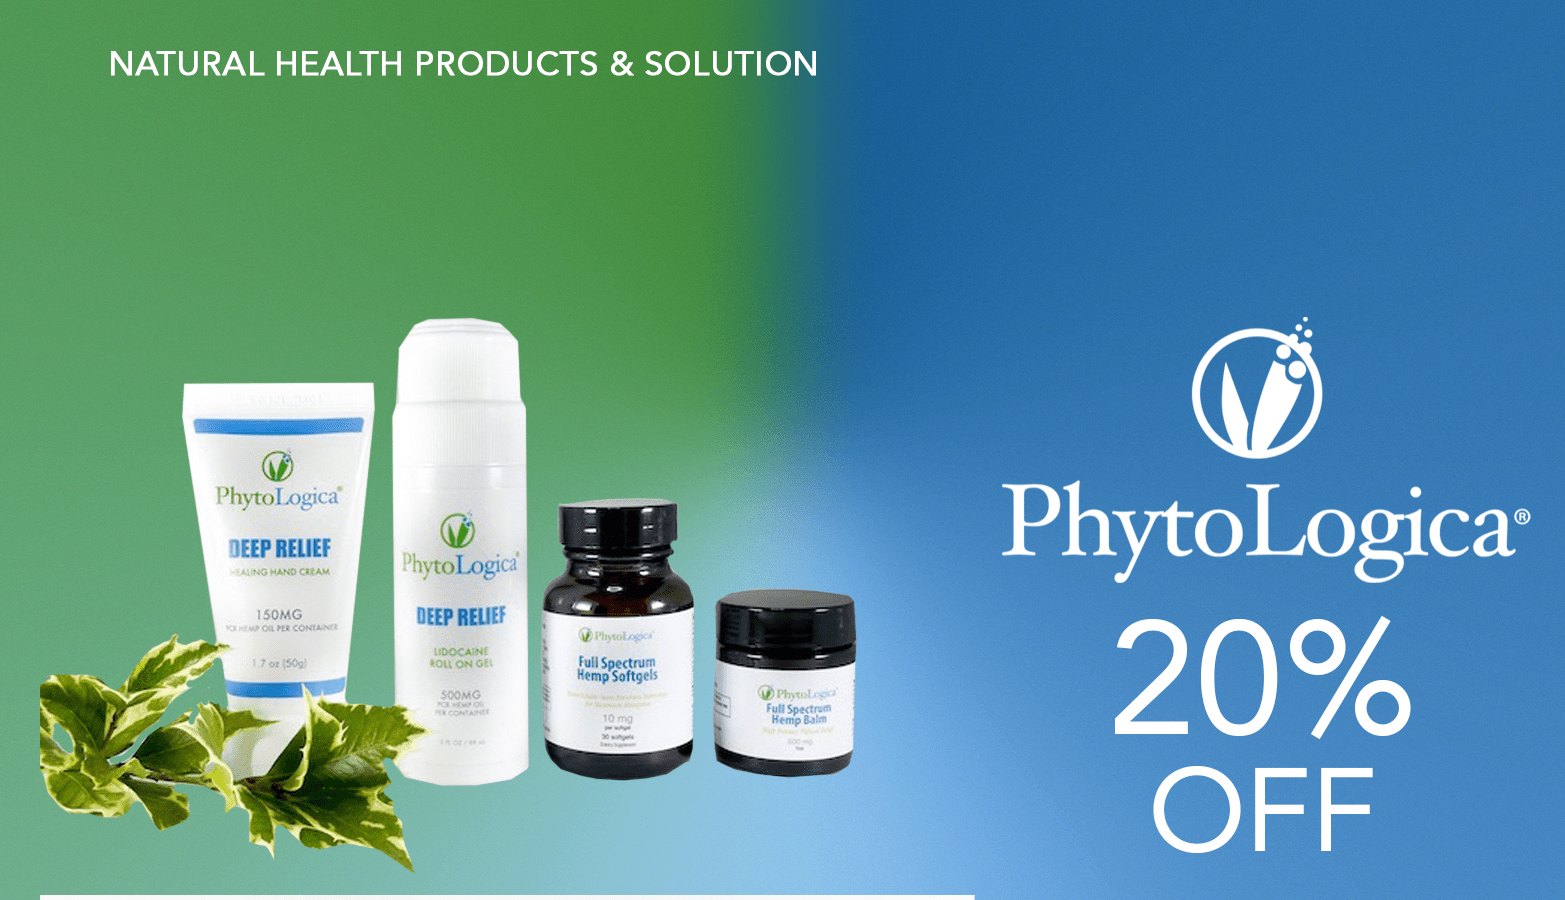 PhytoLogica verified coupon